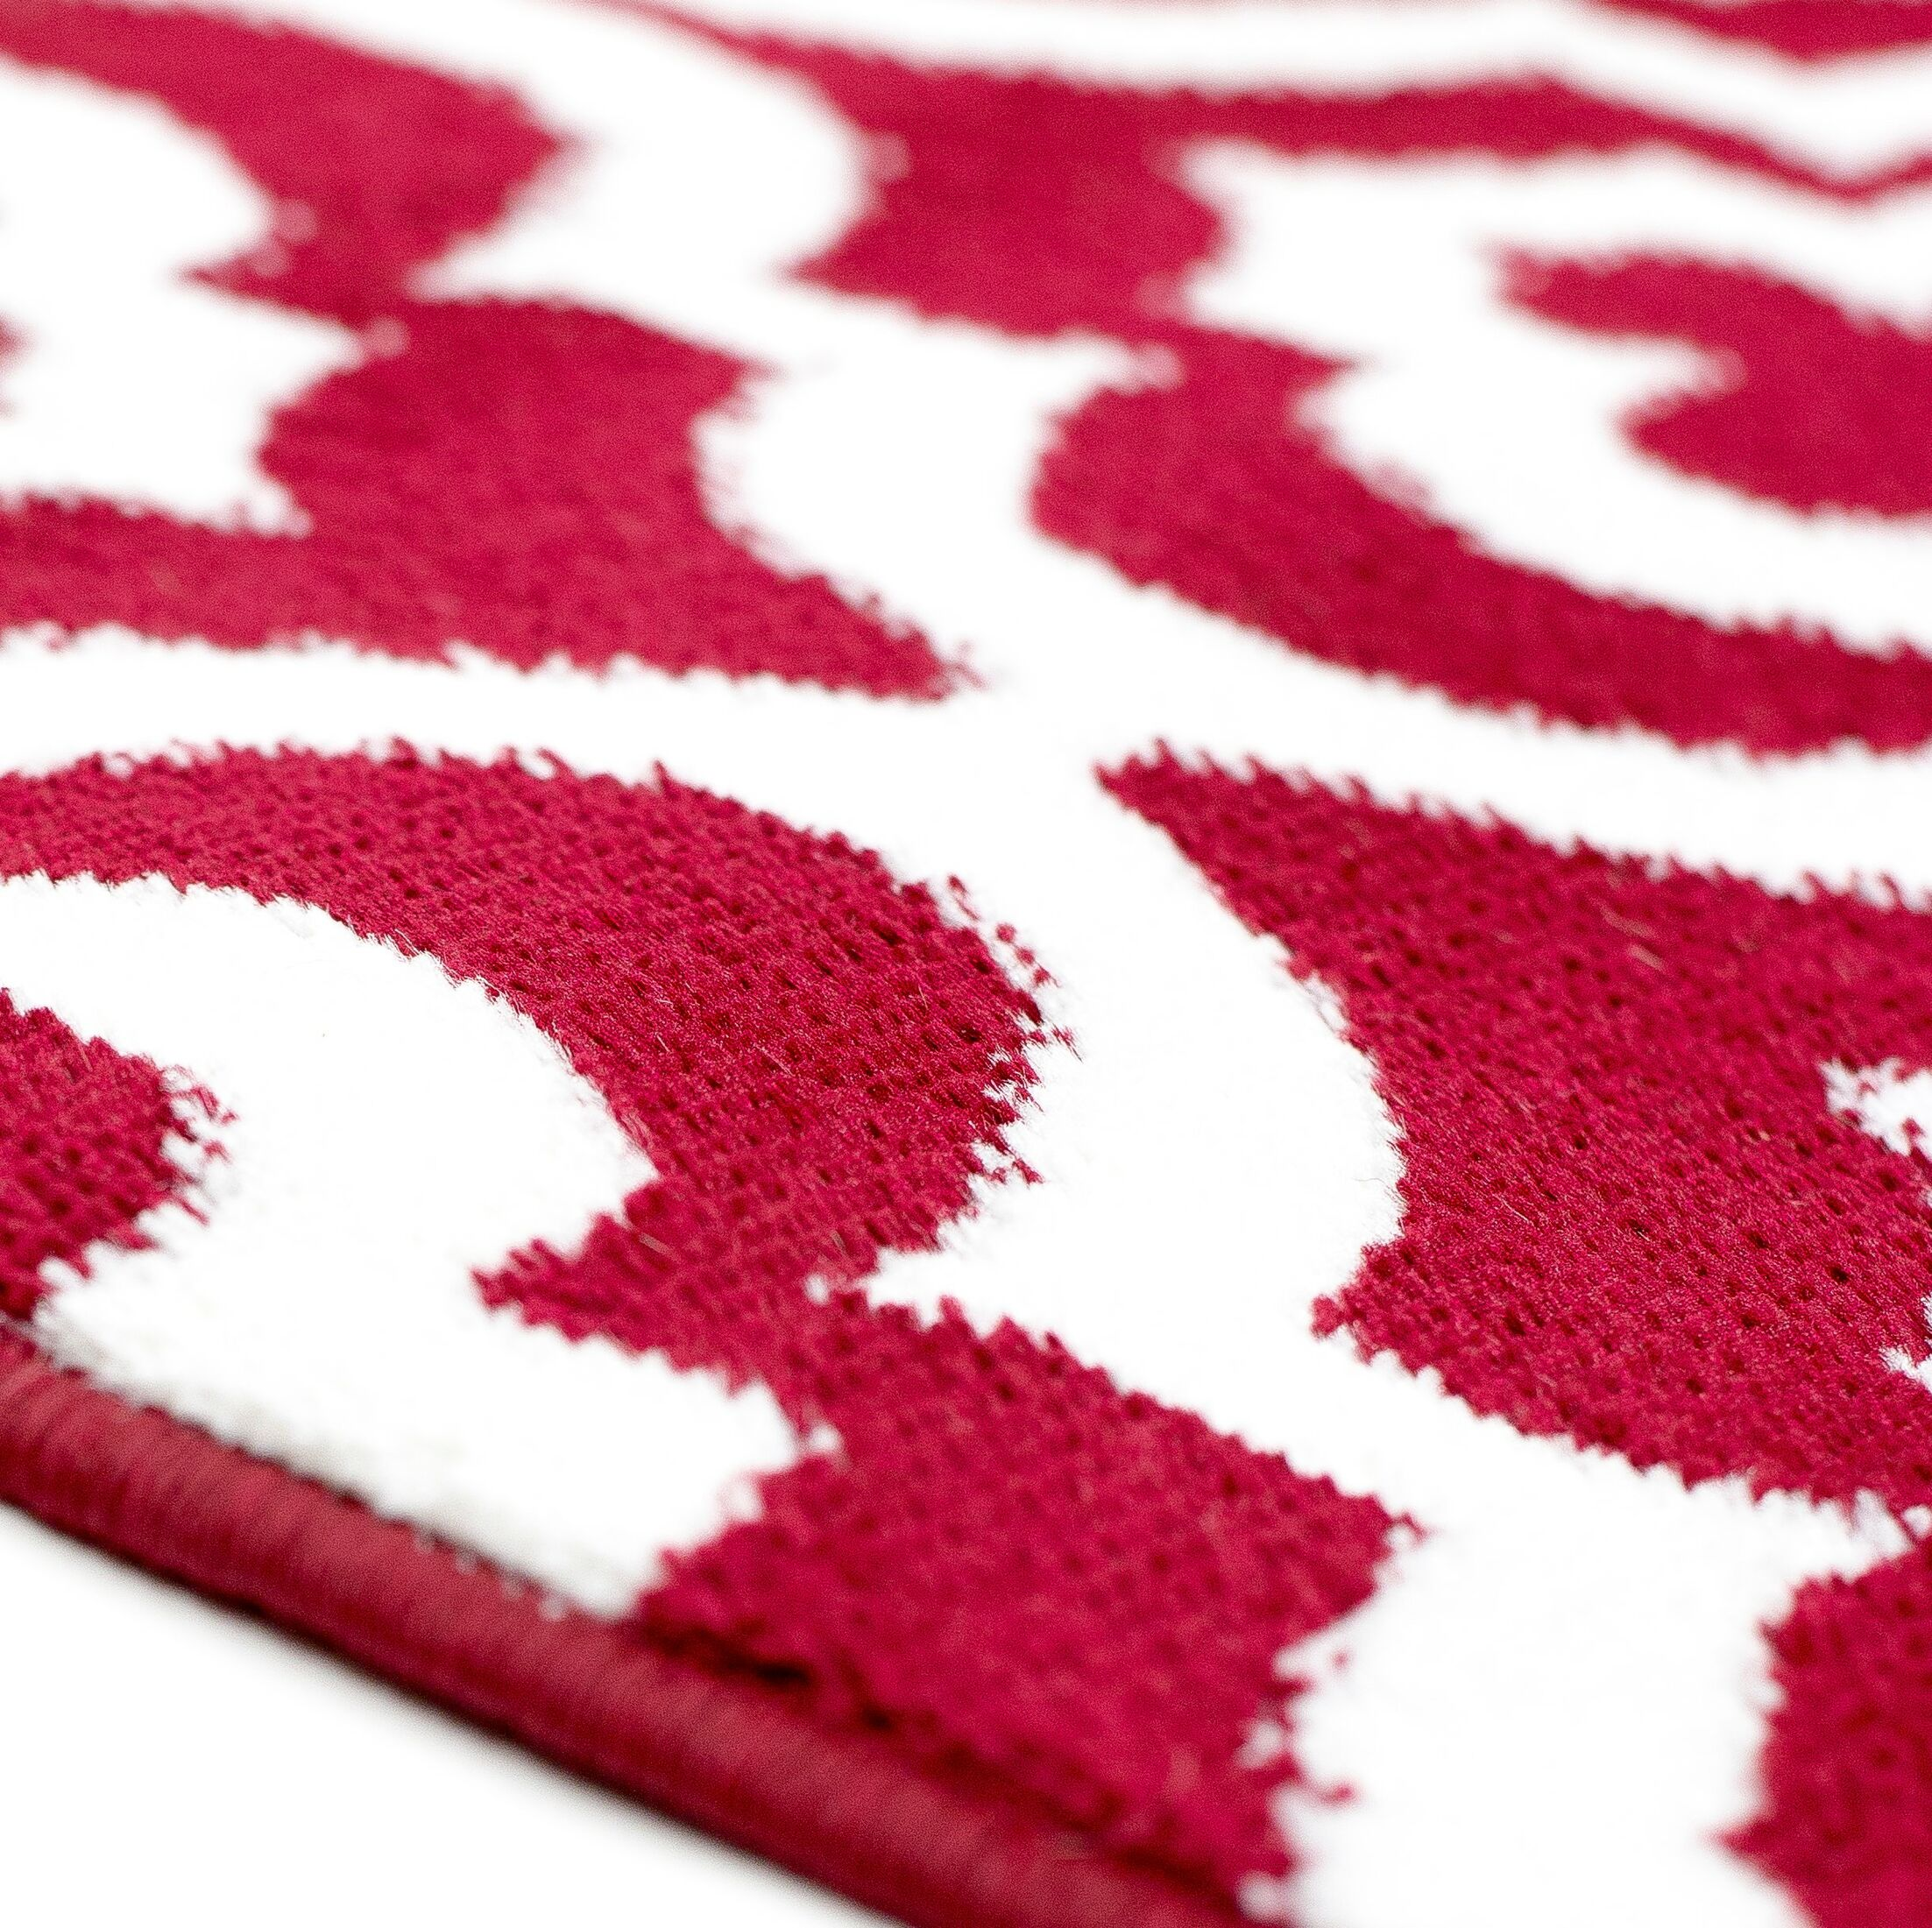 Weekley Rehash Hand-Tufted Pink/White Area Rug Rug Size: Rectangle 8' x 10'